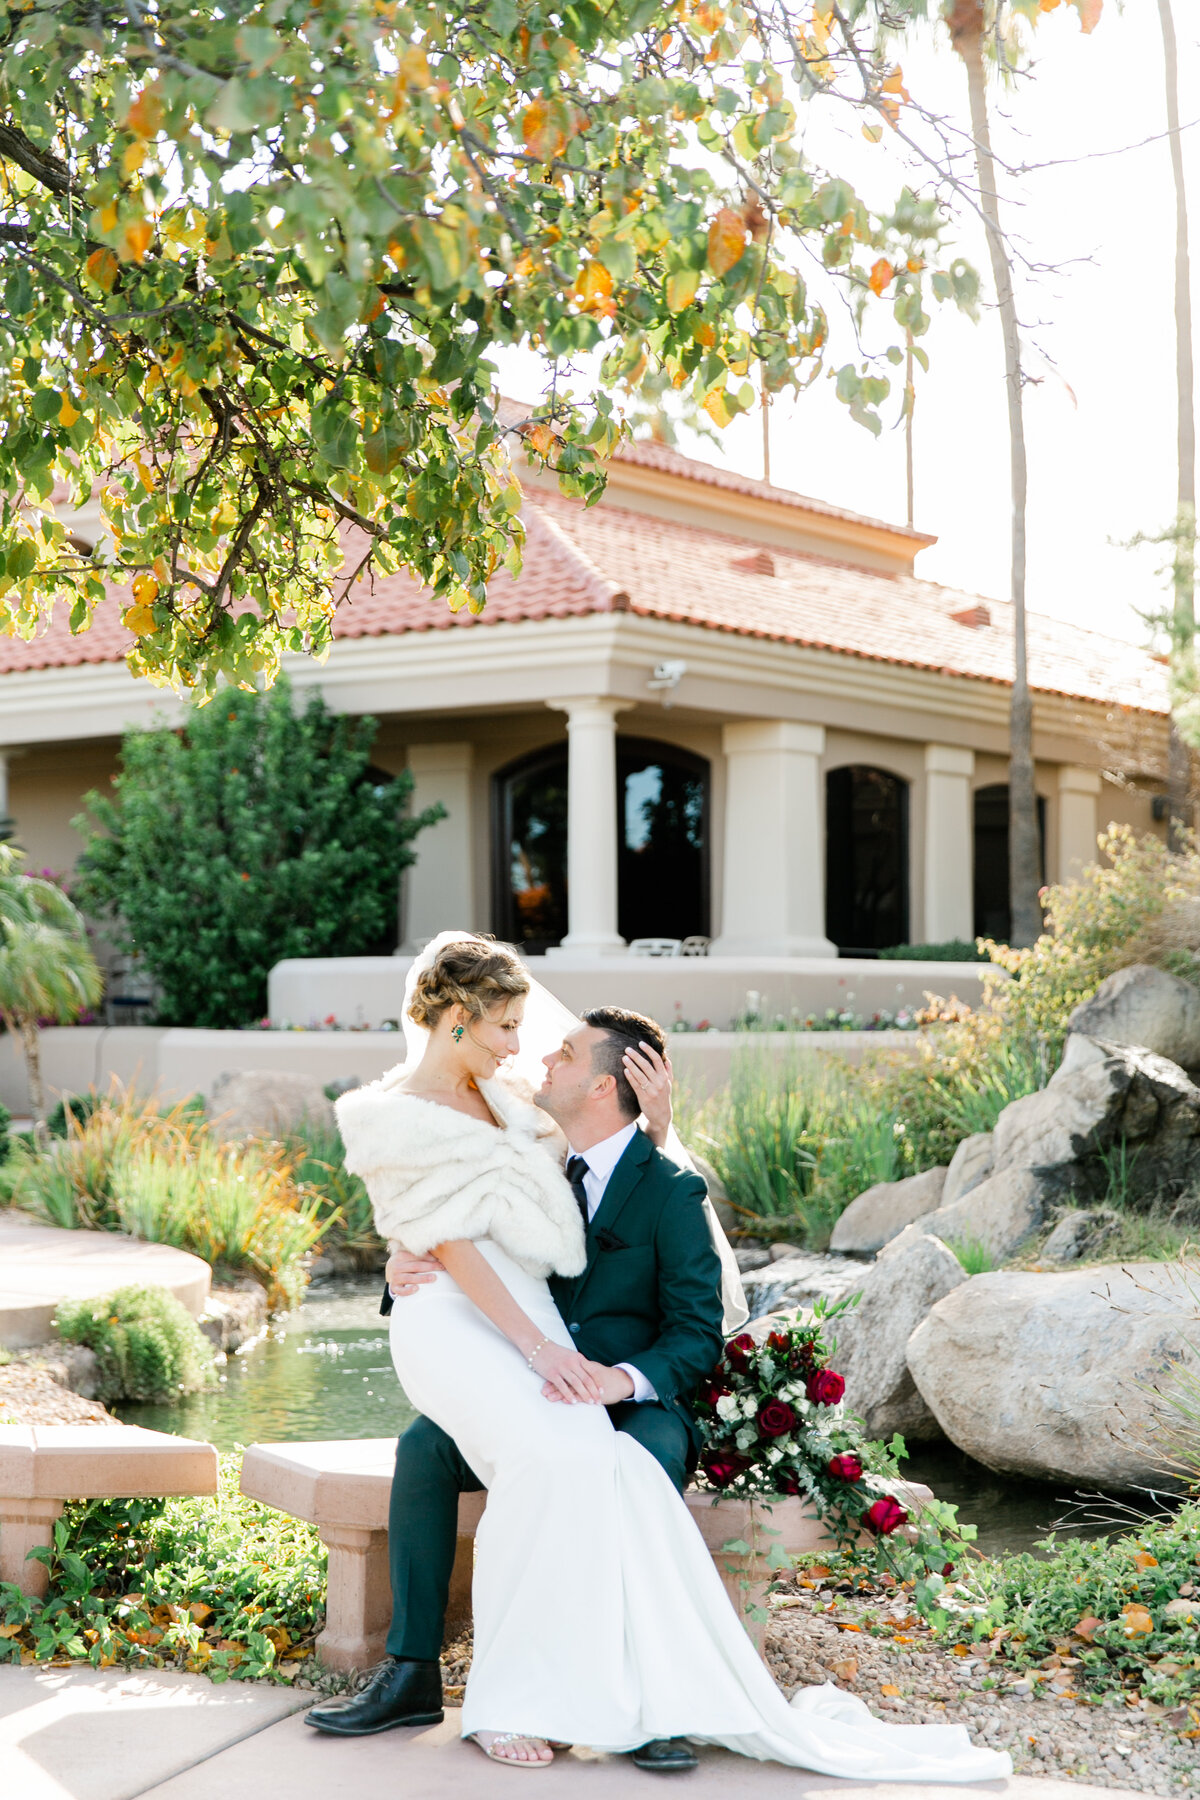 Karlie Colleen Photography - Gilbert Arizona Wedding - Val Vista Lakes - Brynne & Josh-454